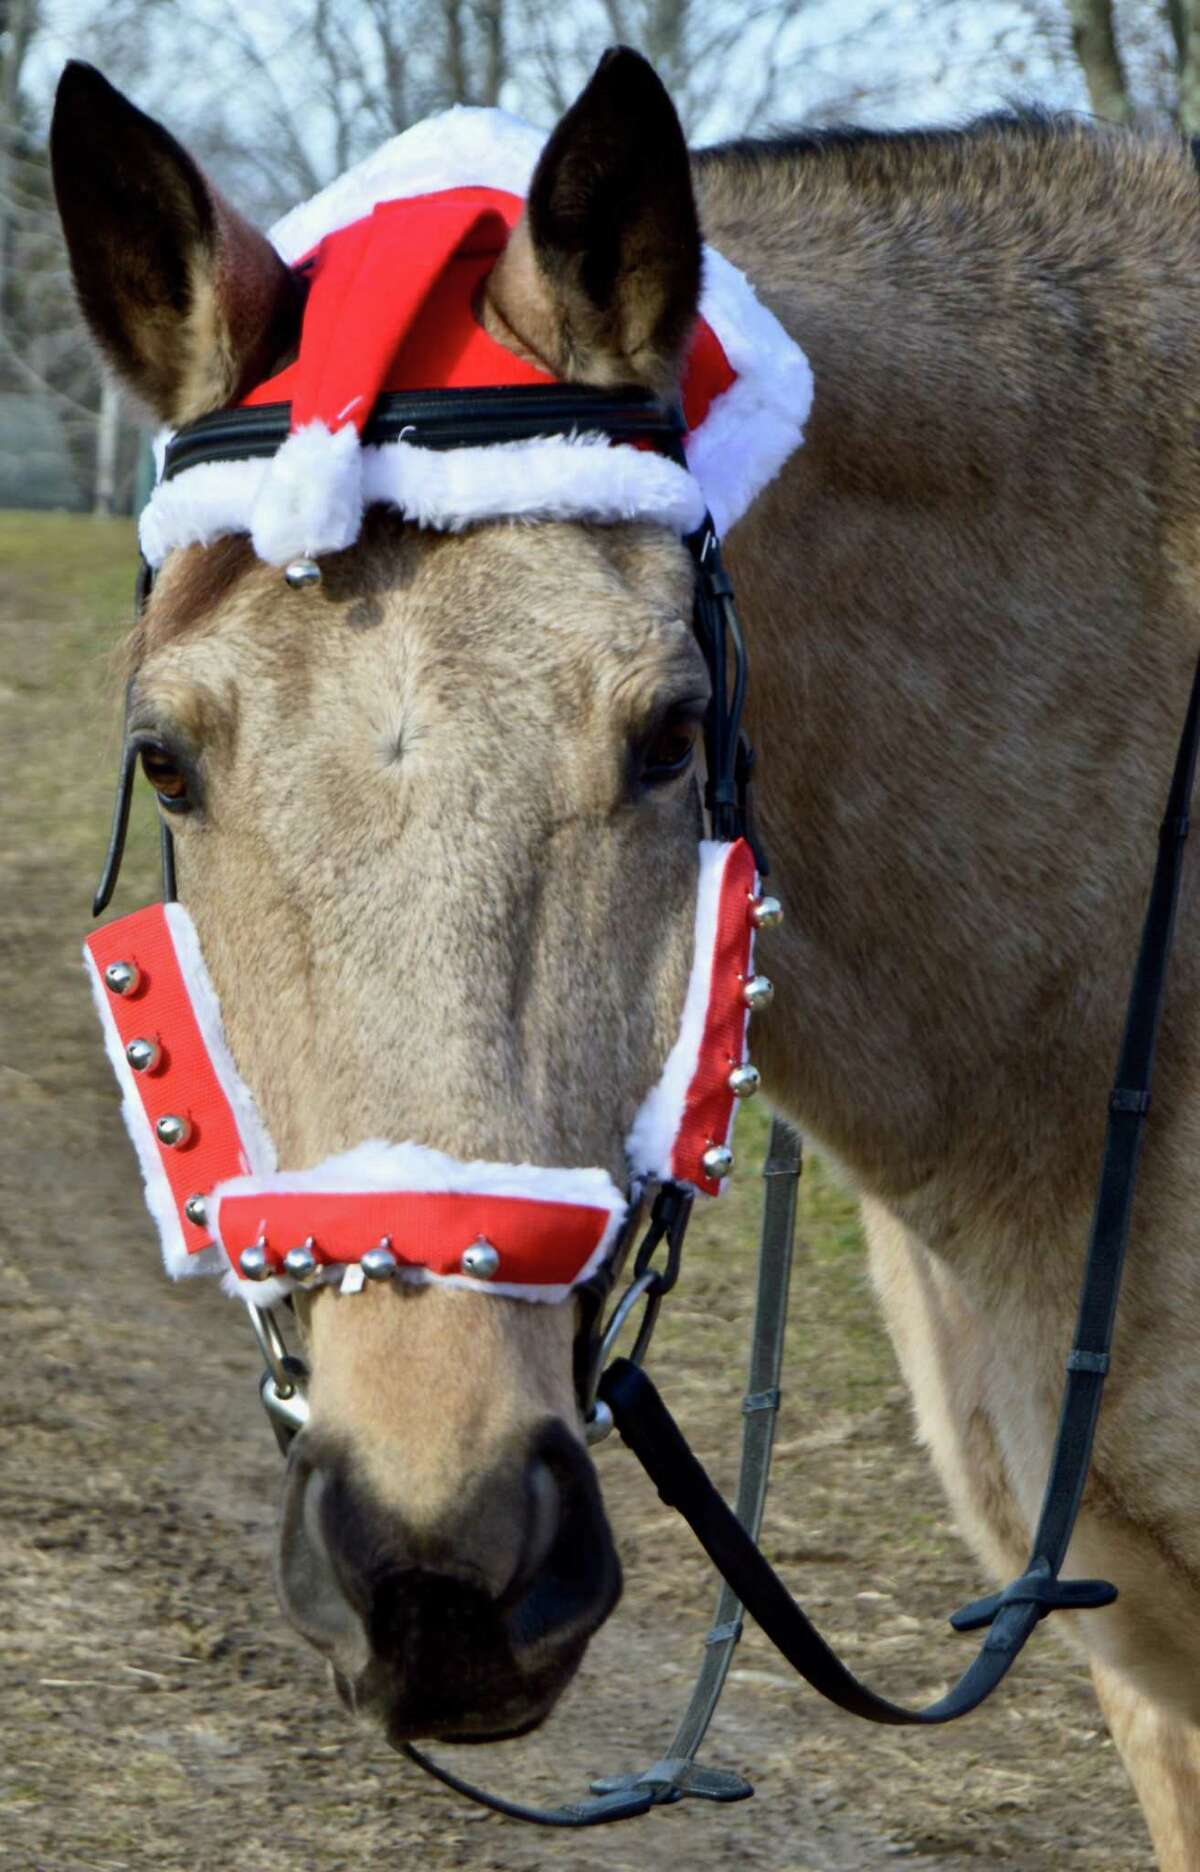 The Humane Organization Representing Suffering Equines (H.O.R.S.E. of Connecticut), will hold its annual Christmas Open House in Washington, Conn., Dec. 12.